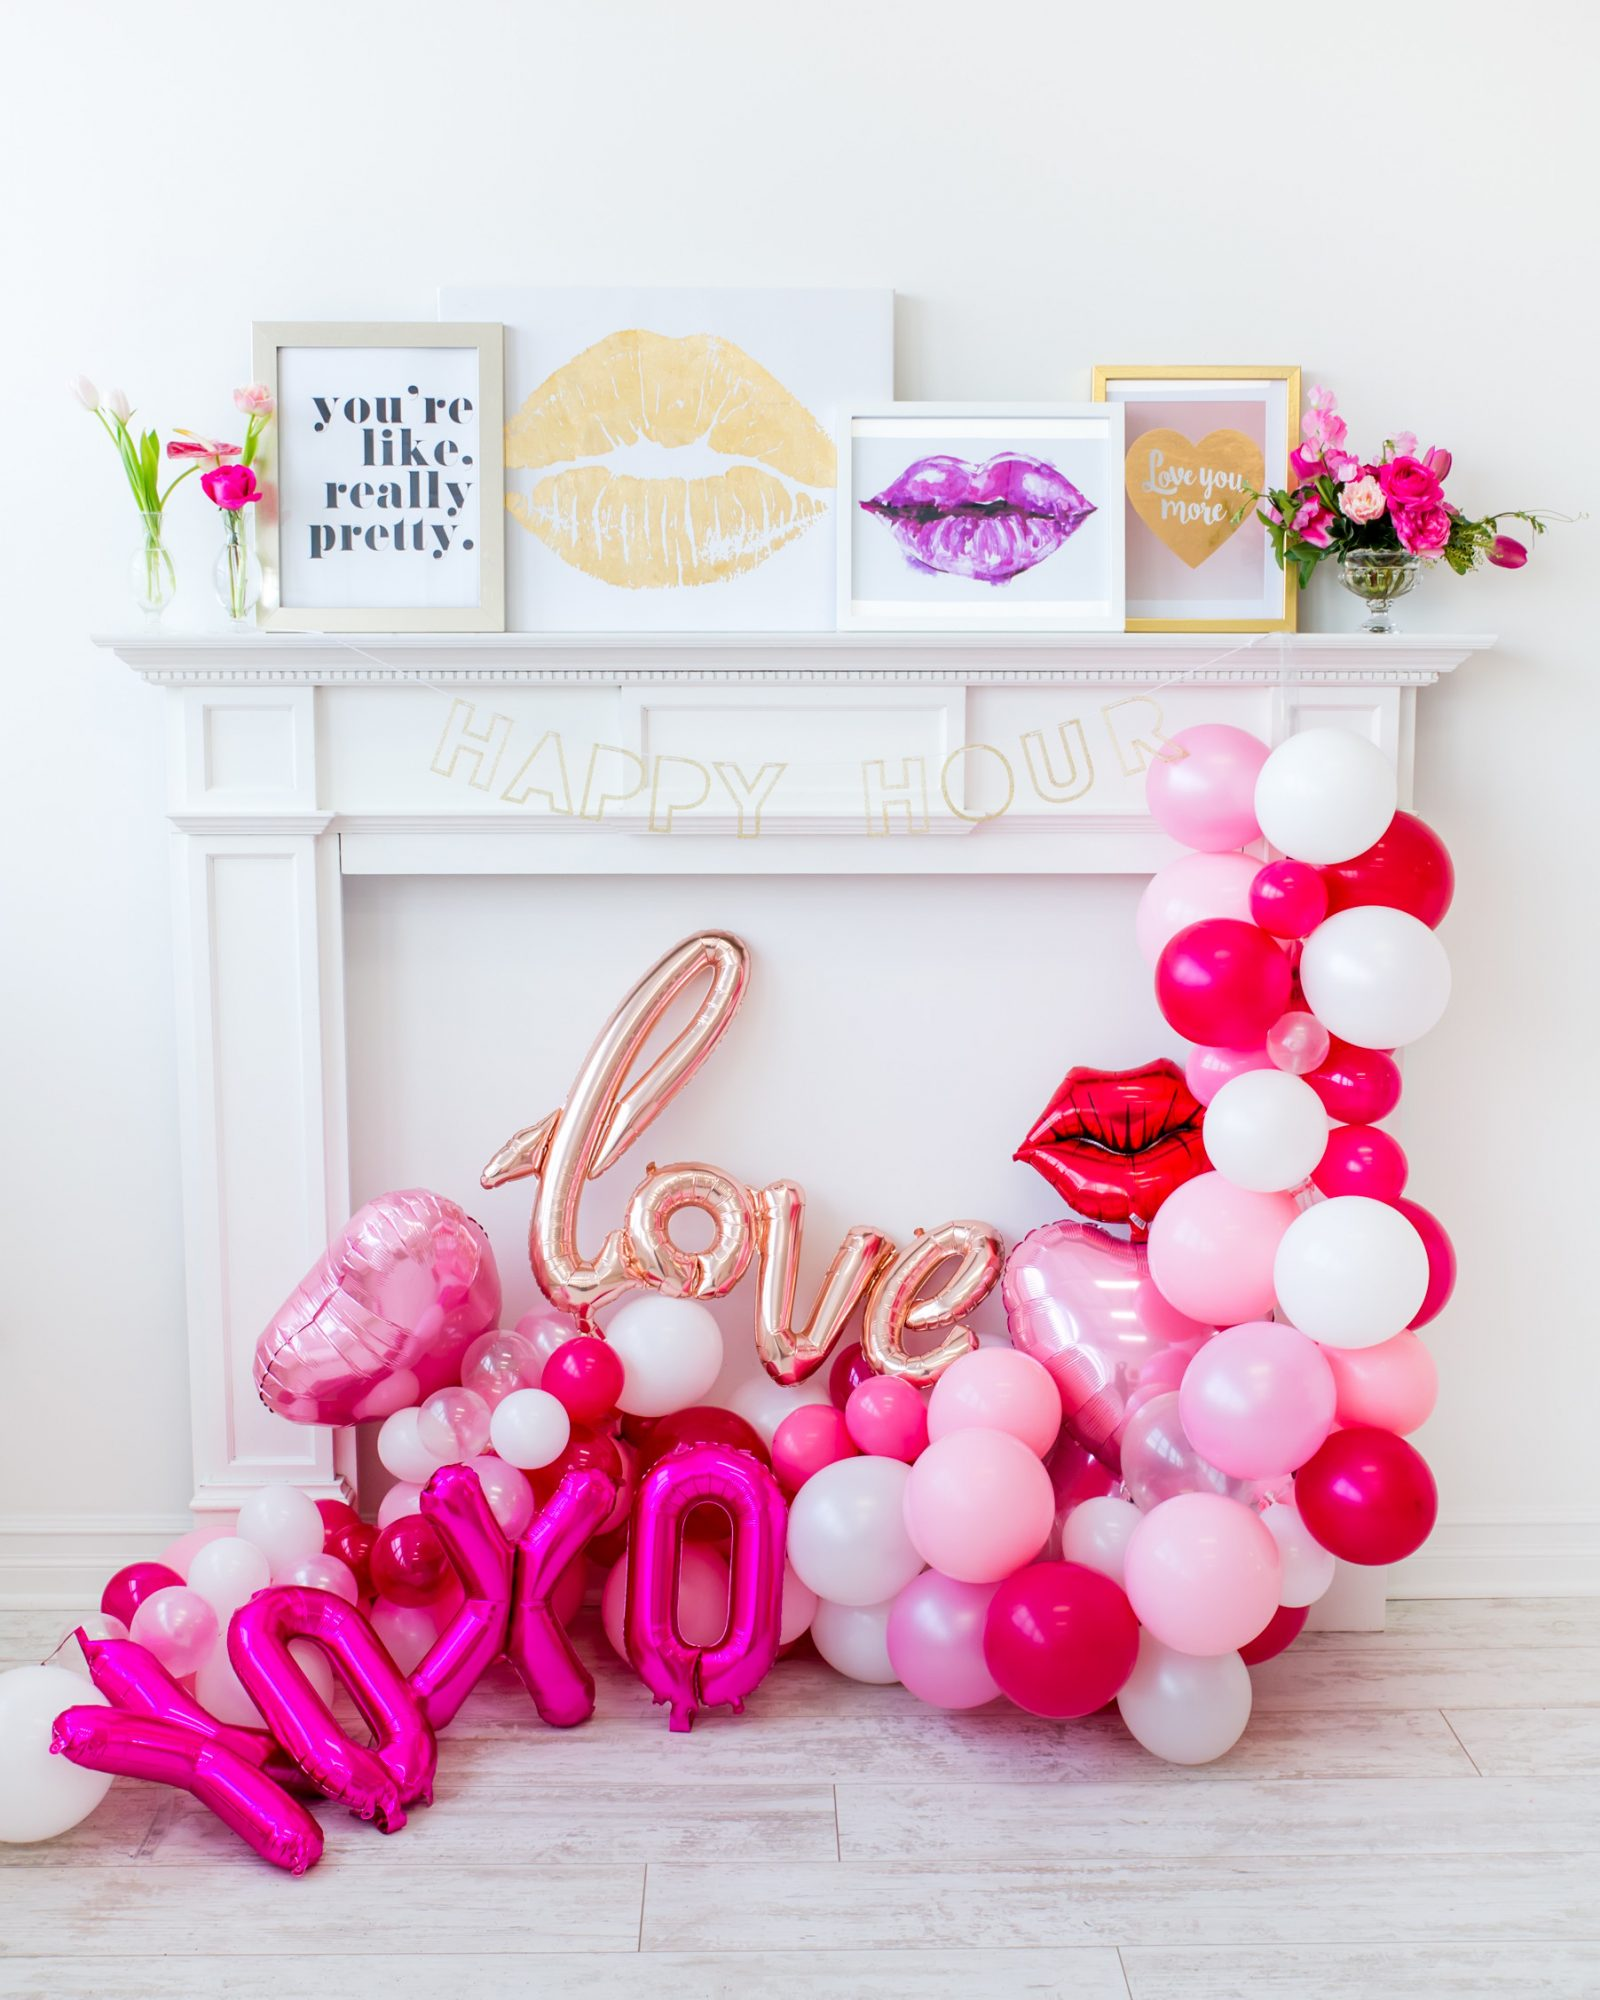 Galentine's Day fireplace mantel decorations